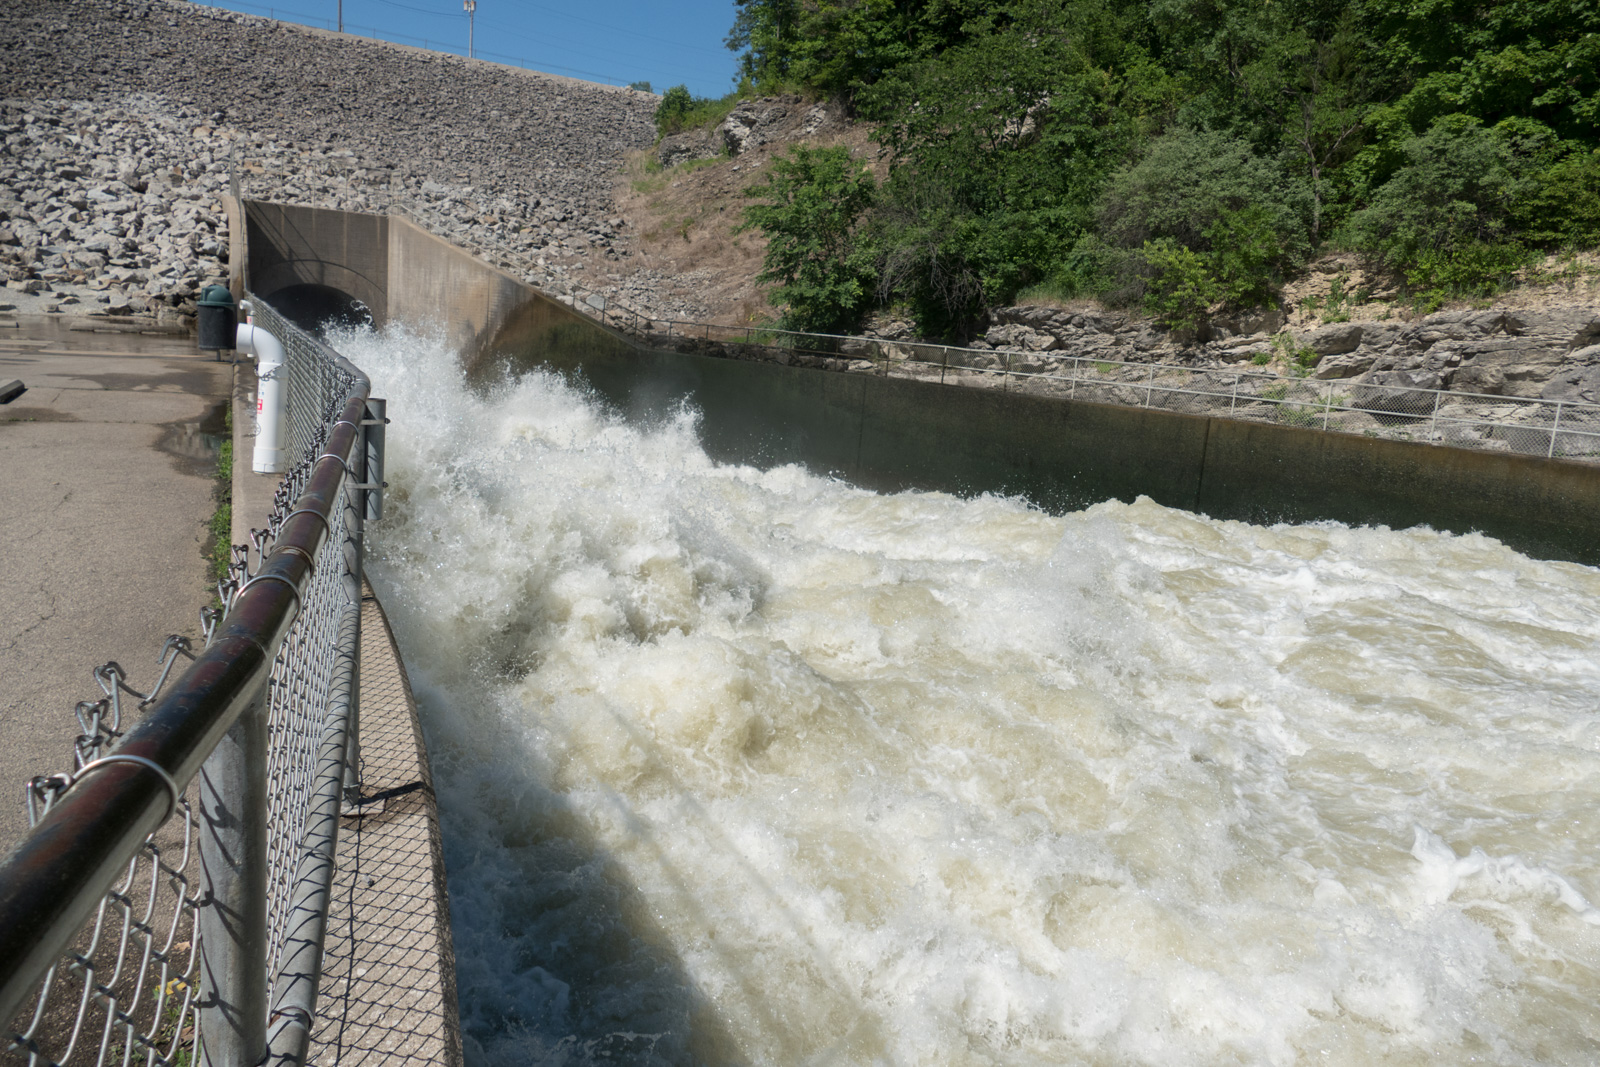 With the high water levels the torrent of water in the spillway to the dam was very impressive. One can just imagine what it was like to have enough water to overflow the top of the dam.